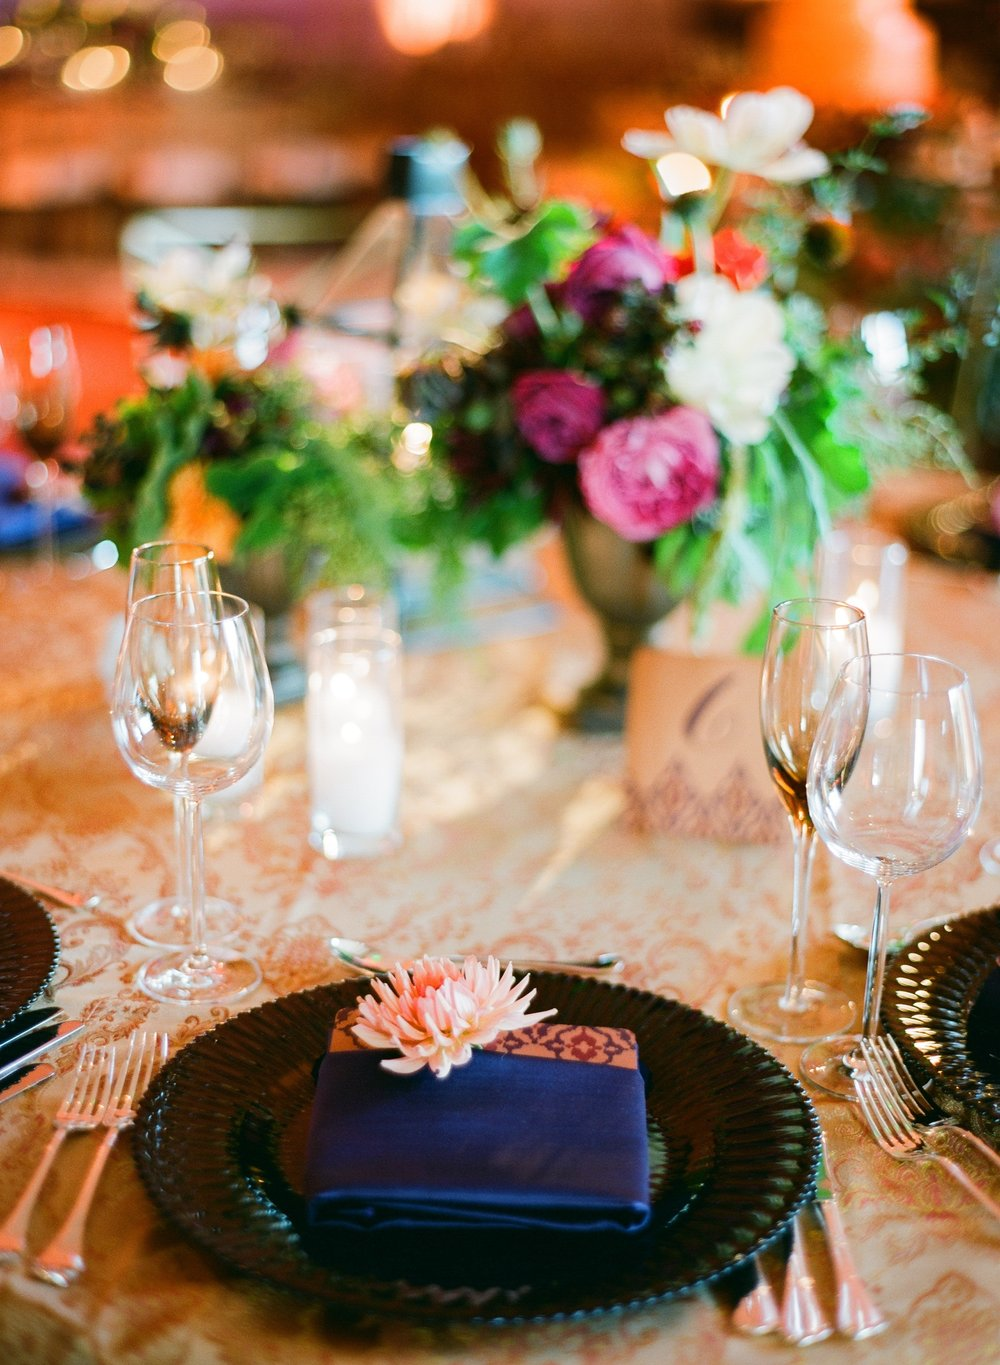 santabarbarawedding.com | Belmond El Encanto | Magnolia Event Design | Jose Villa | Reception Table